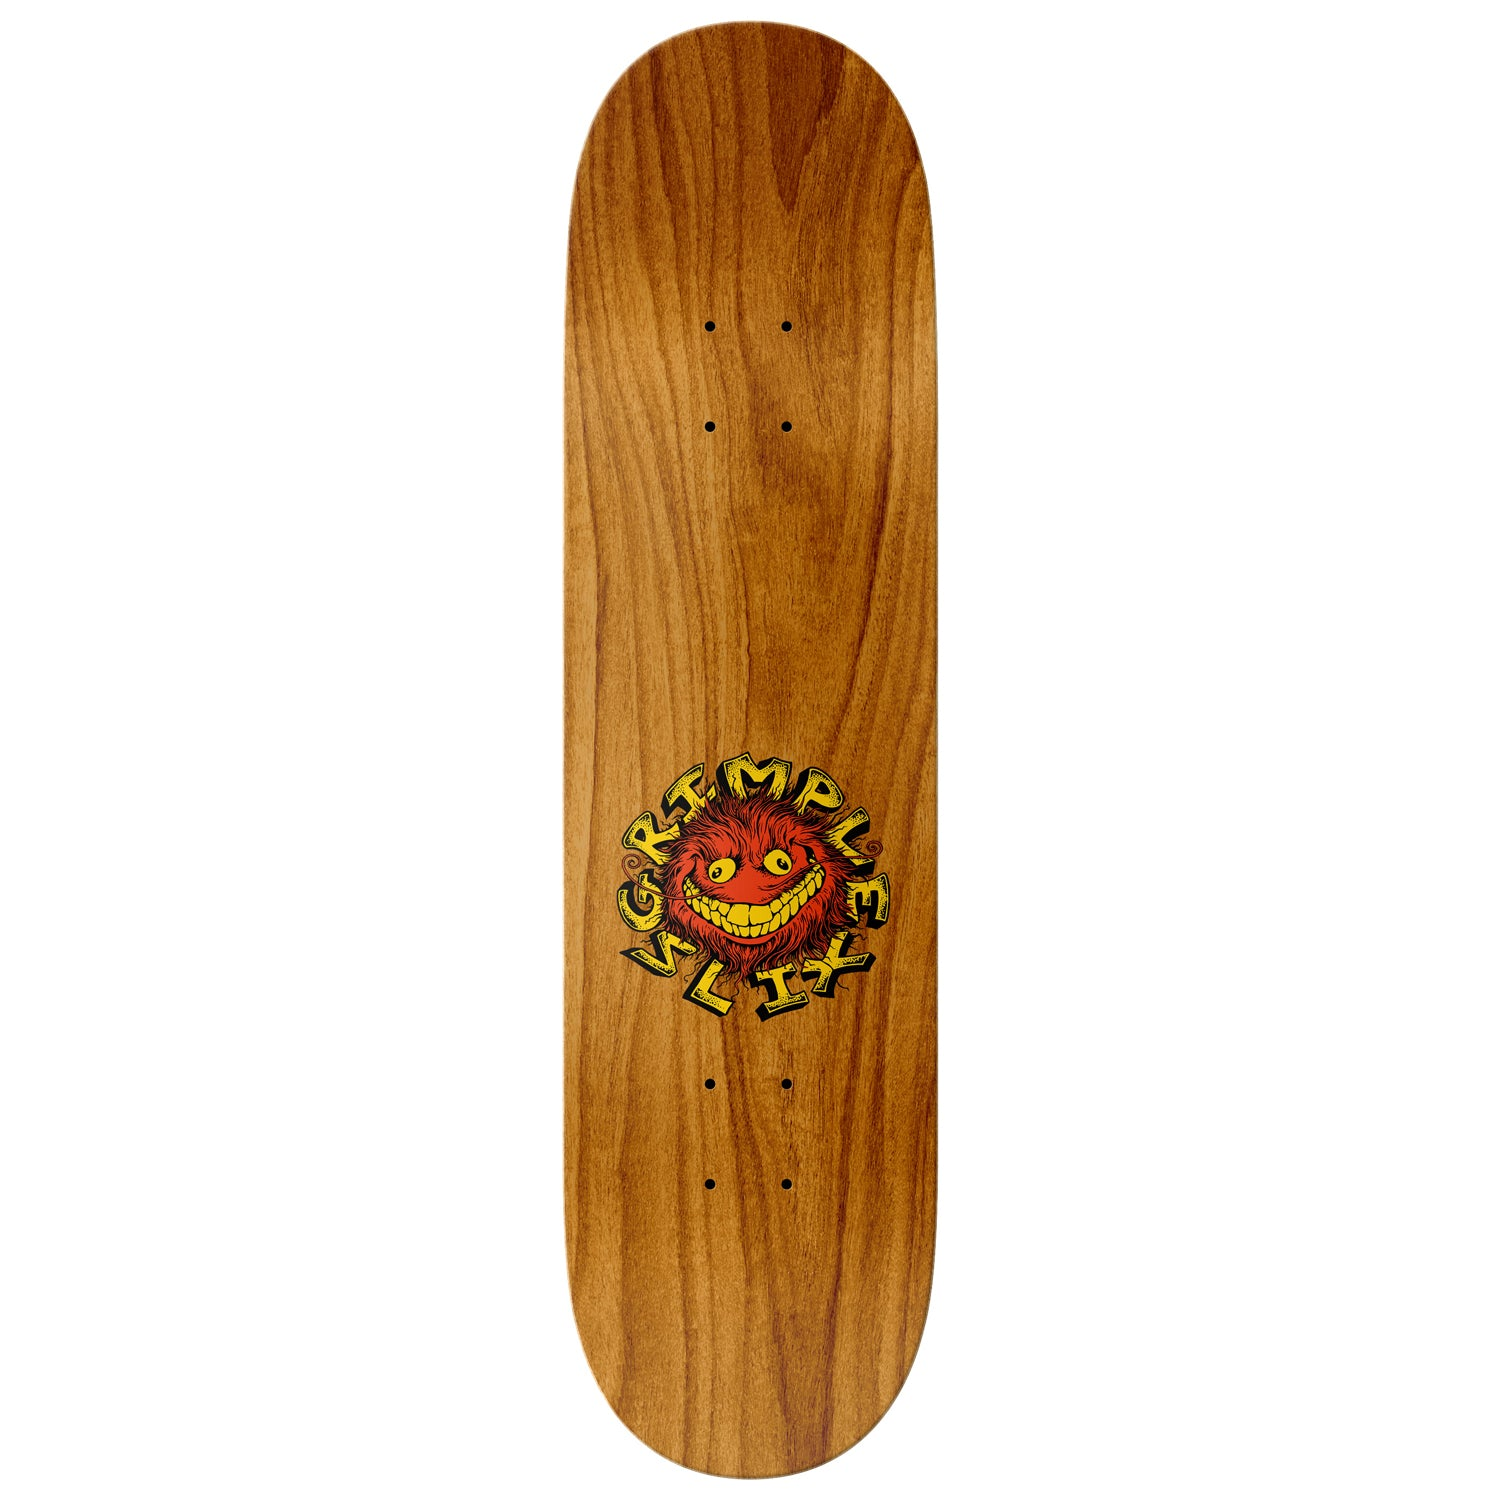 Anti-Hero Hewitt Grimple Slix Deck 8.5""